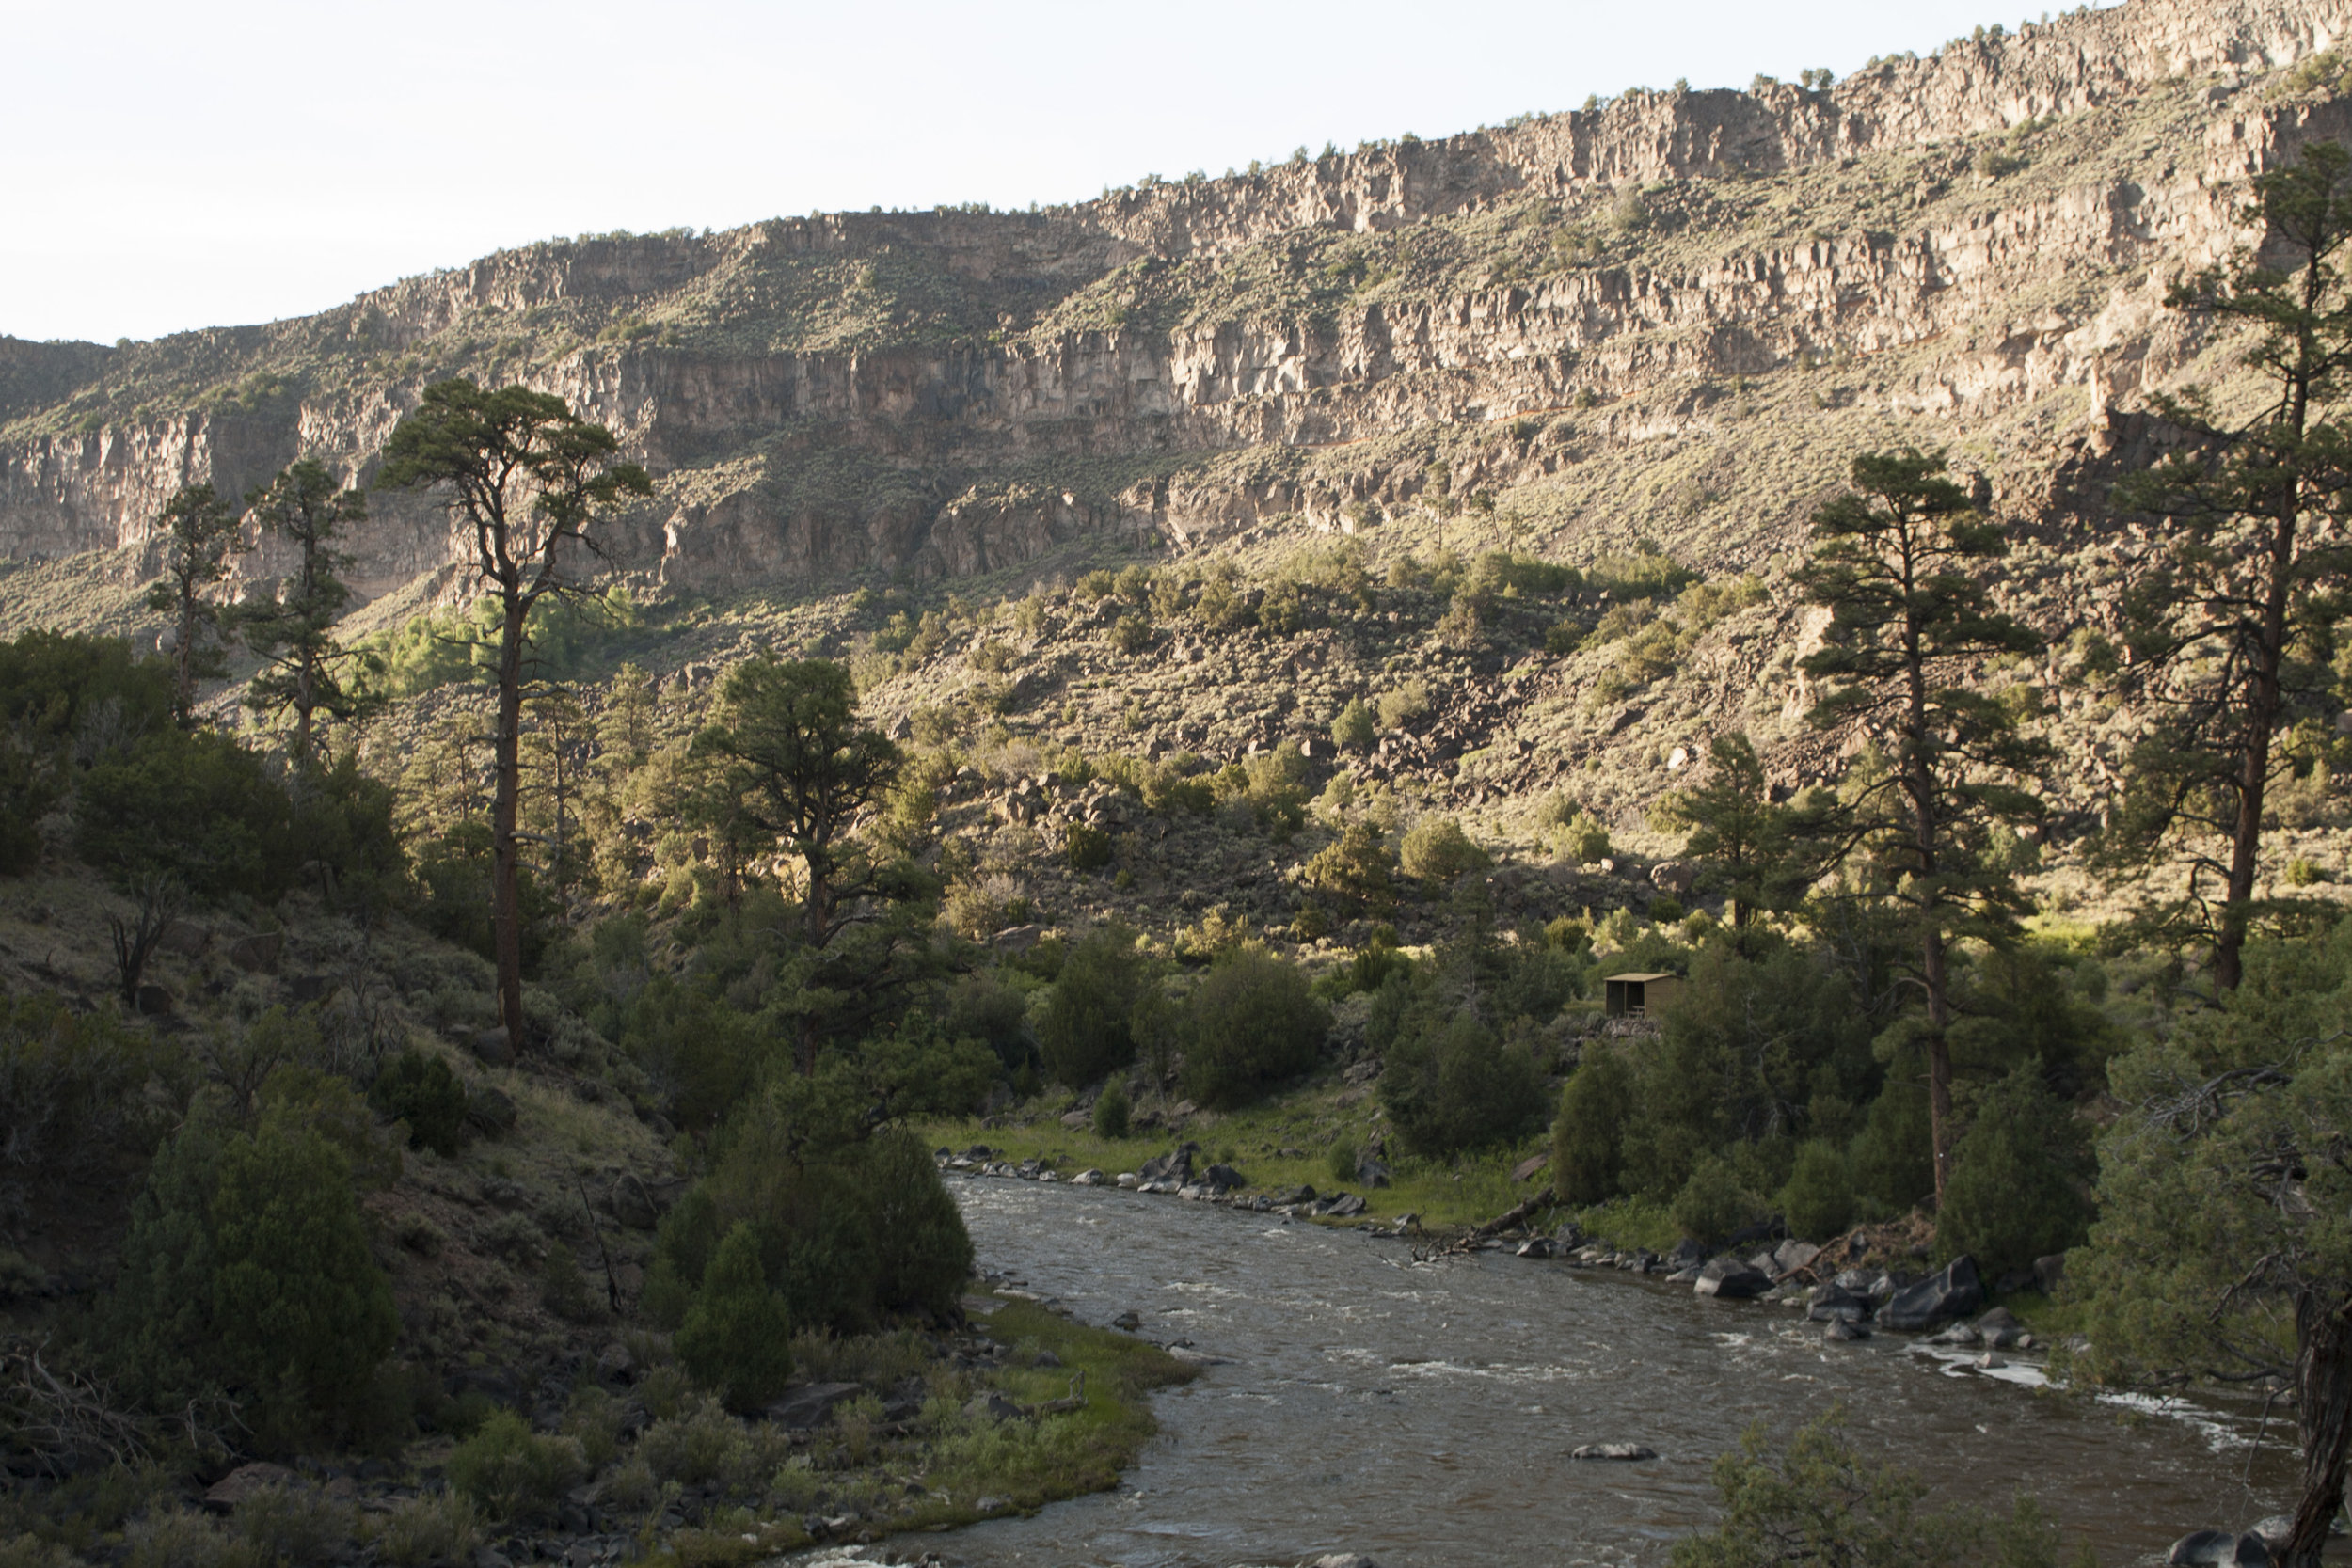 Looking down the steep canyon walls of the Rio Grande Gorge in Rio del Norte National Monument.